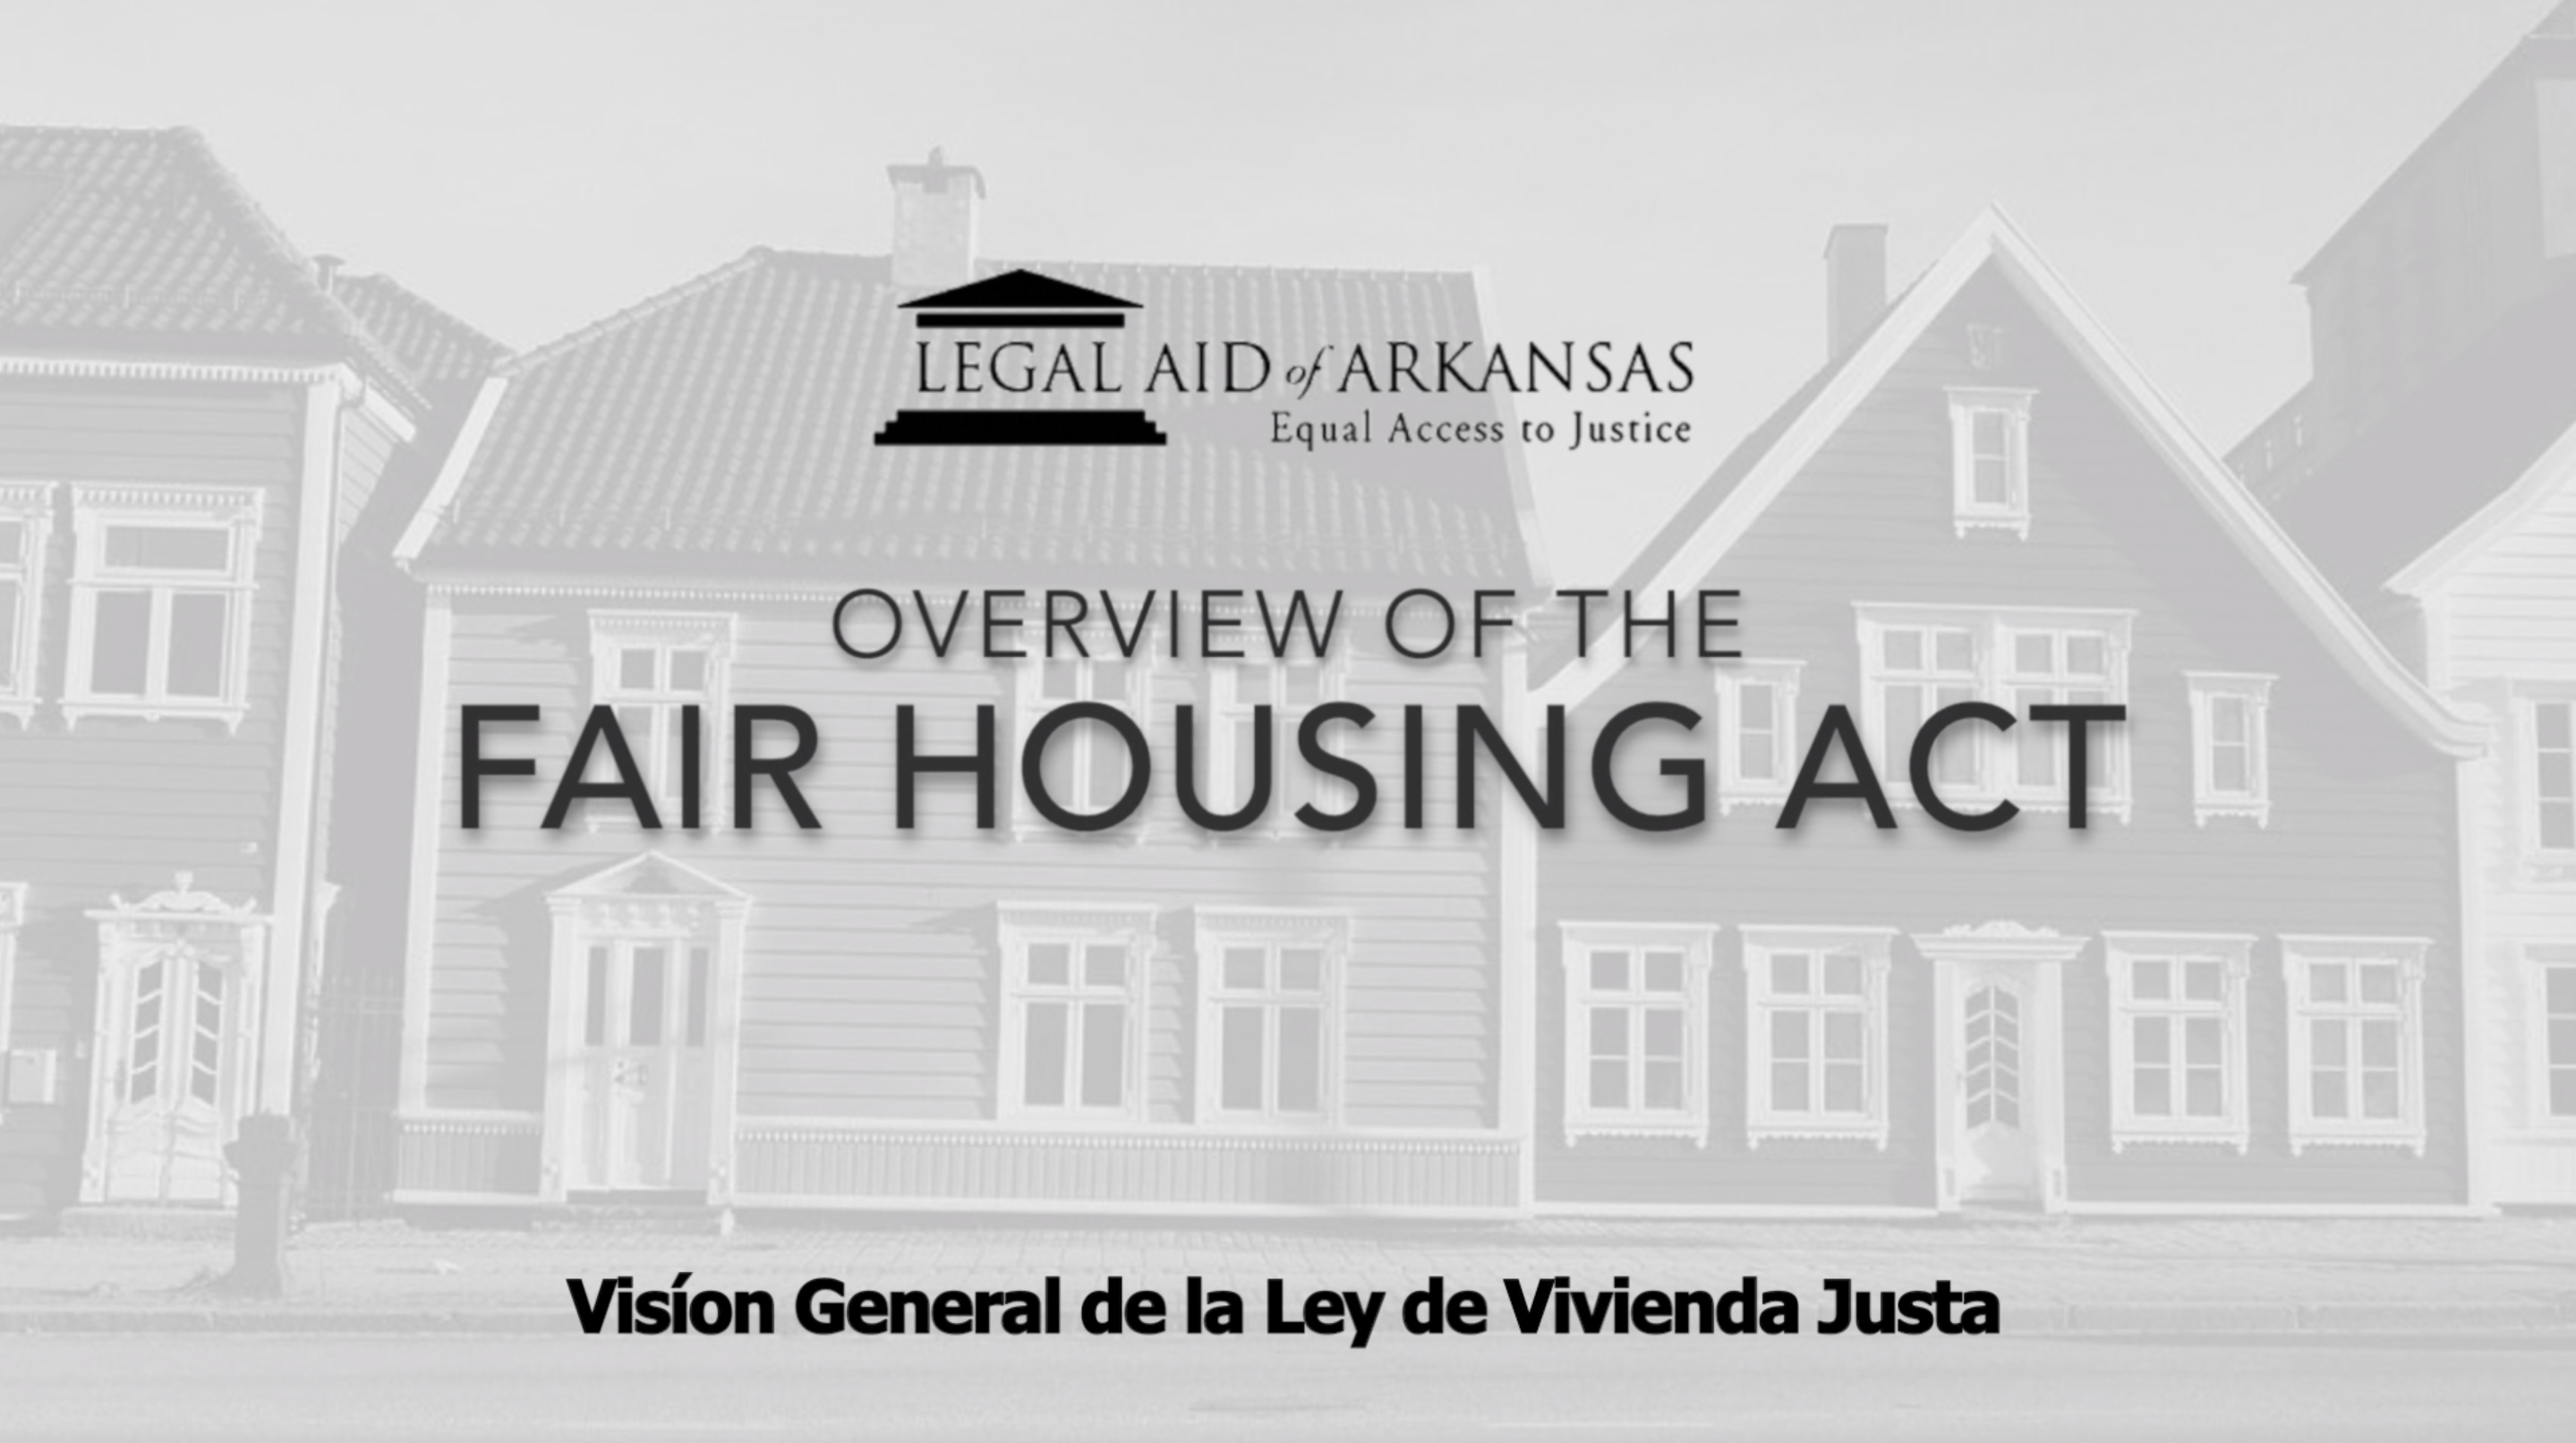 VIDEO - Visíon General de la Ley de Vivienda Justa